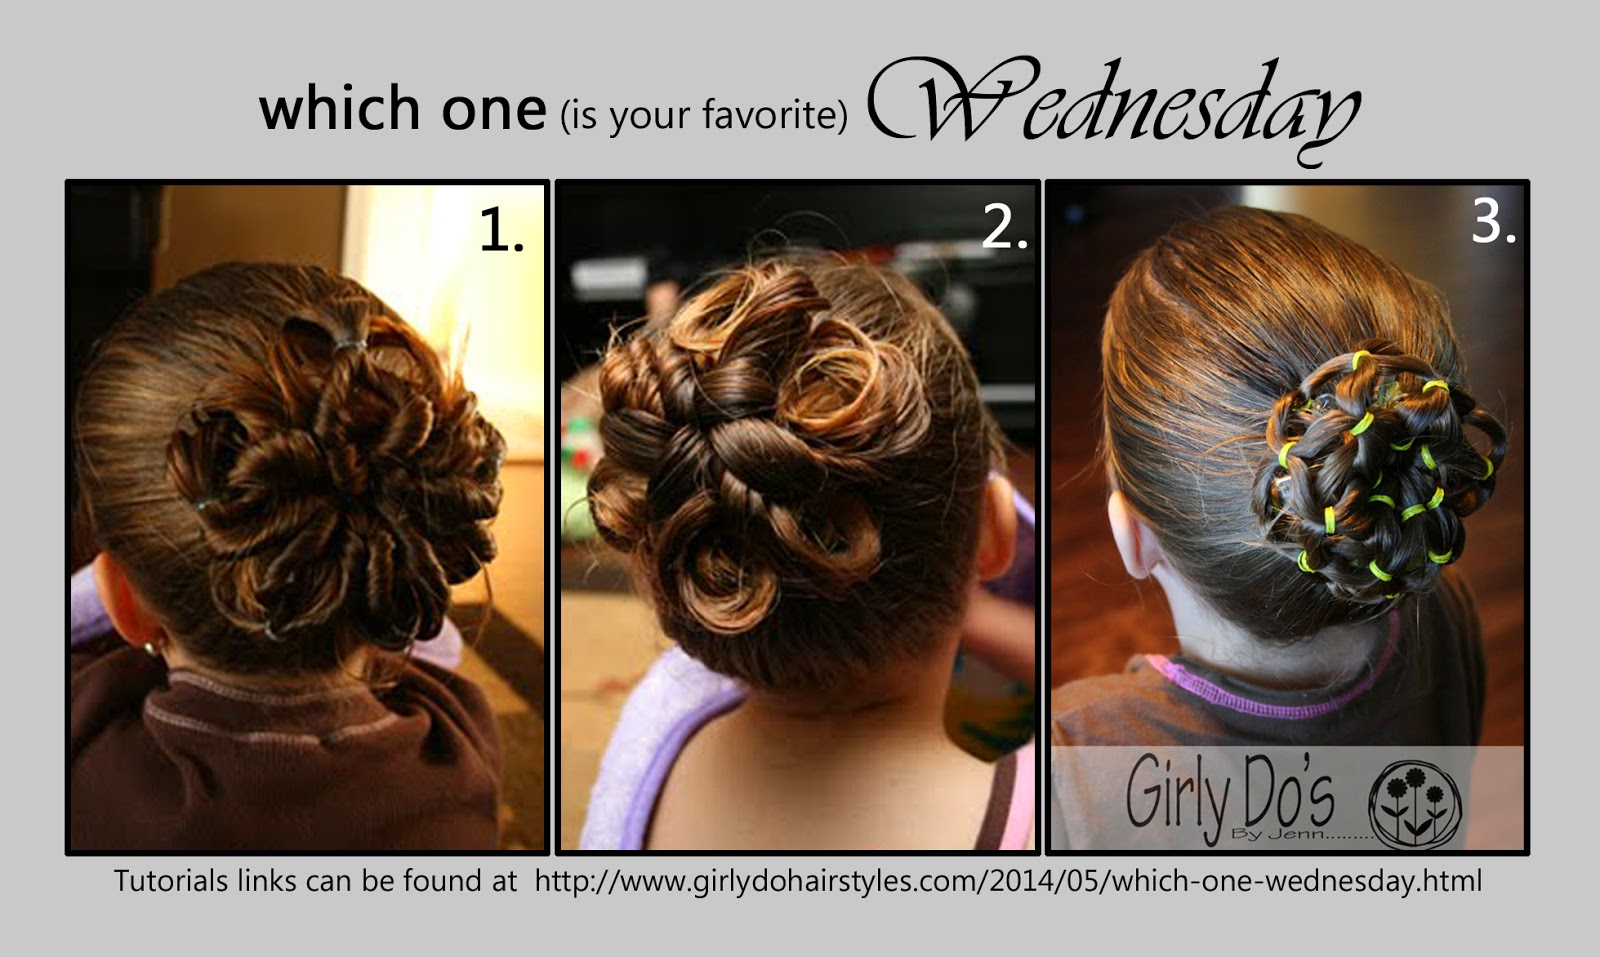 Swell Girly Do Hairstyles By Jenn May 2014 Hairstyles For Men Maxibearus